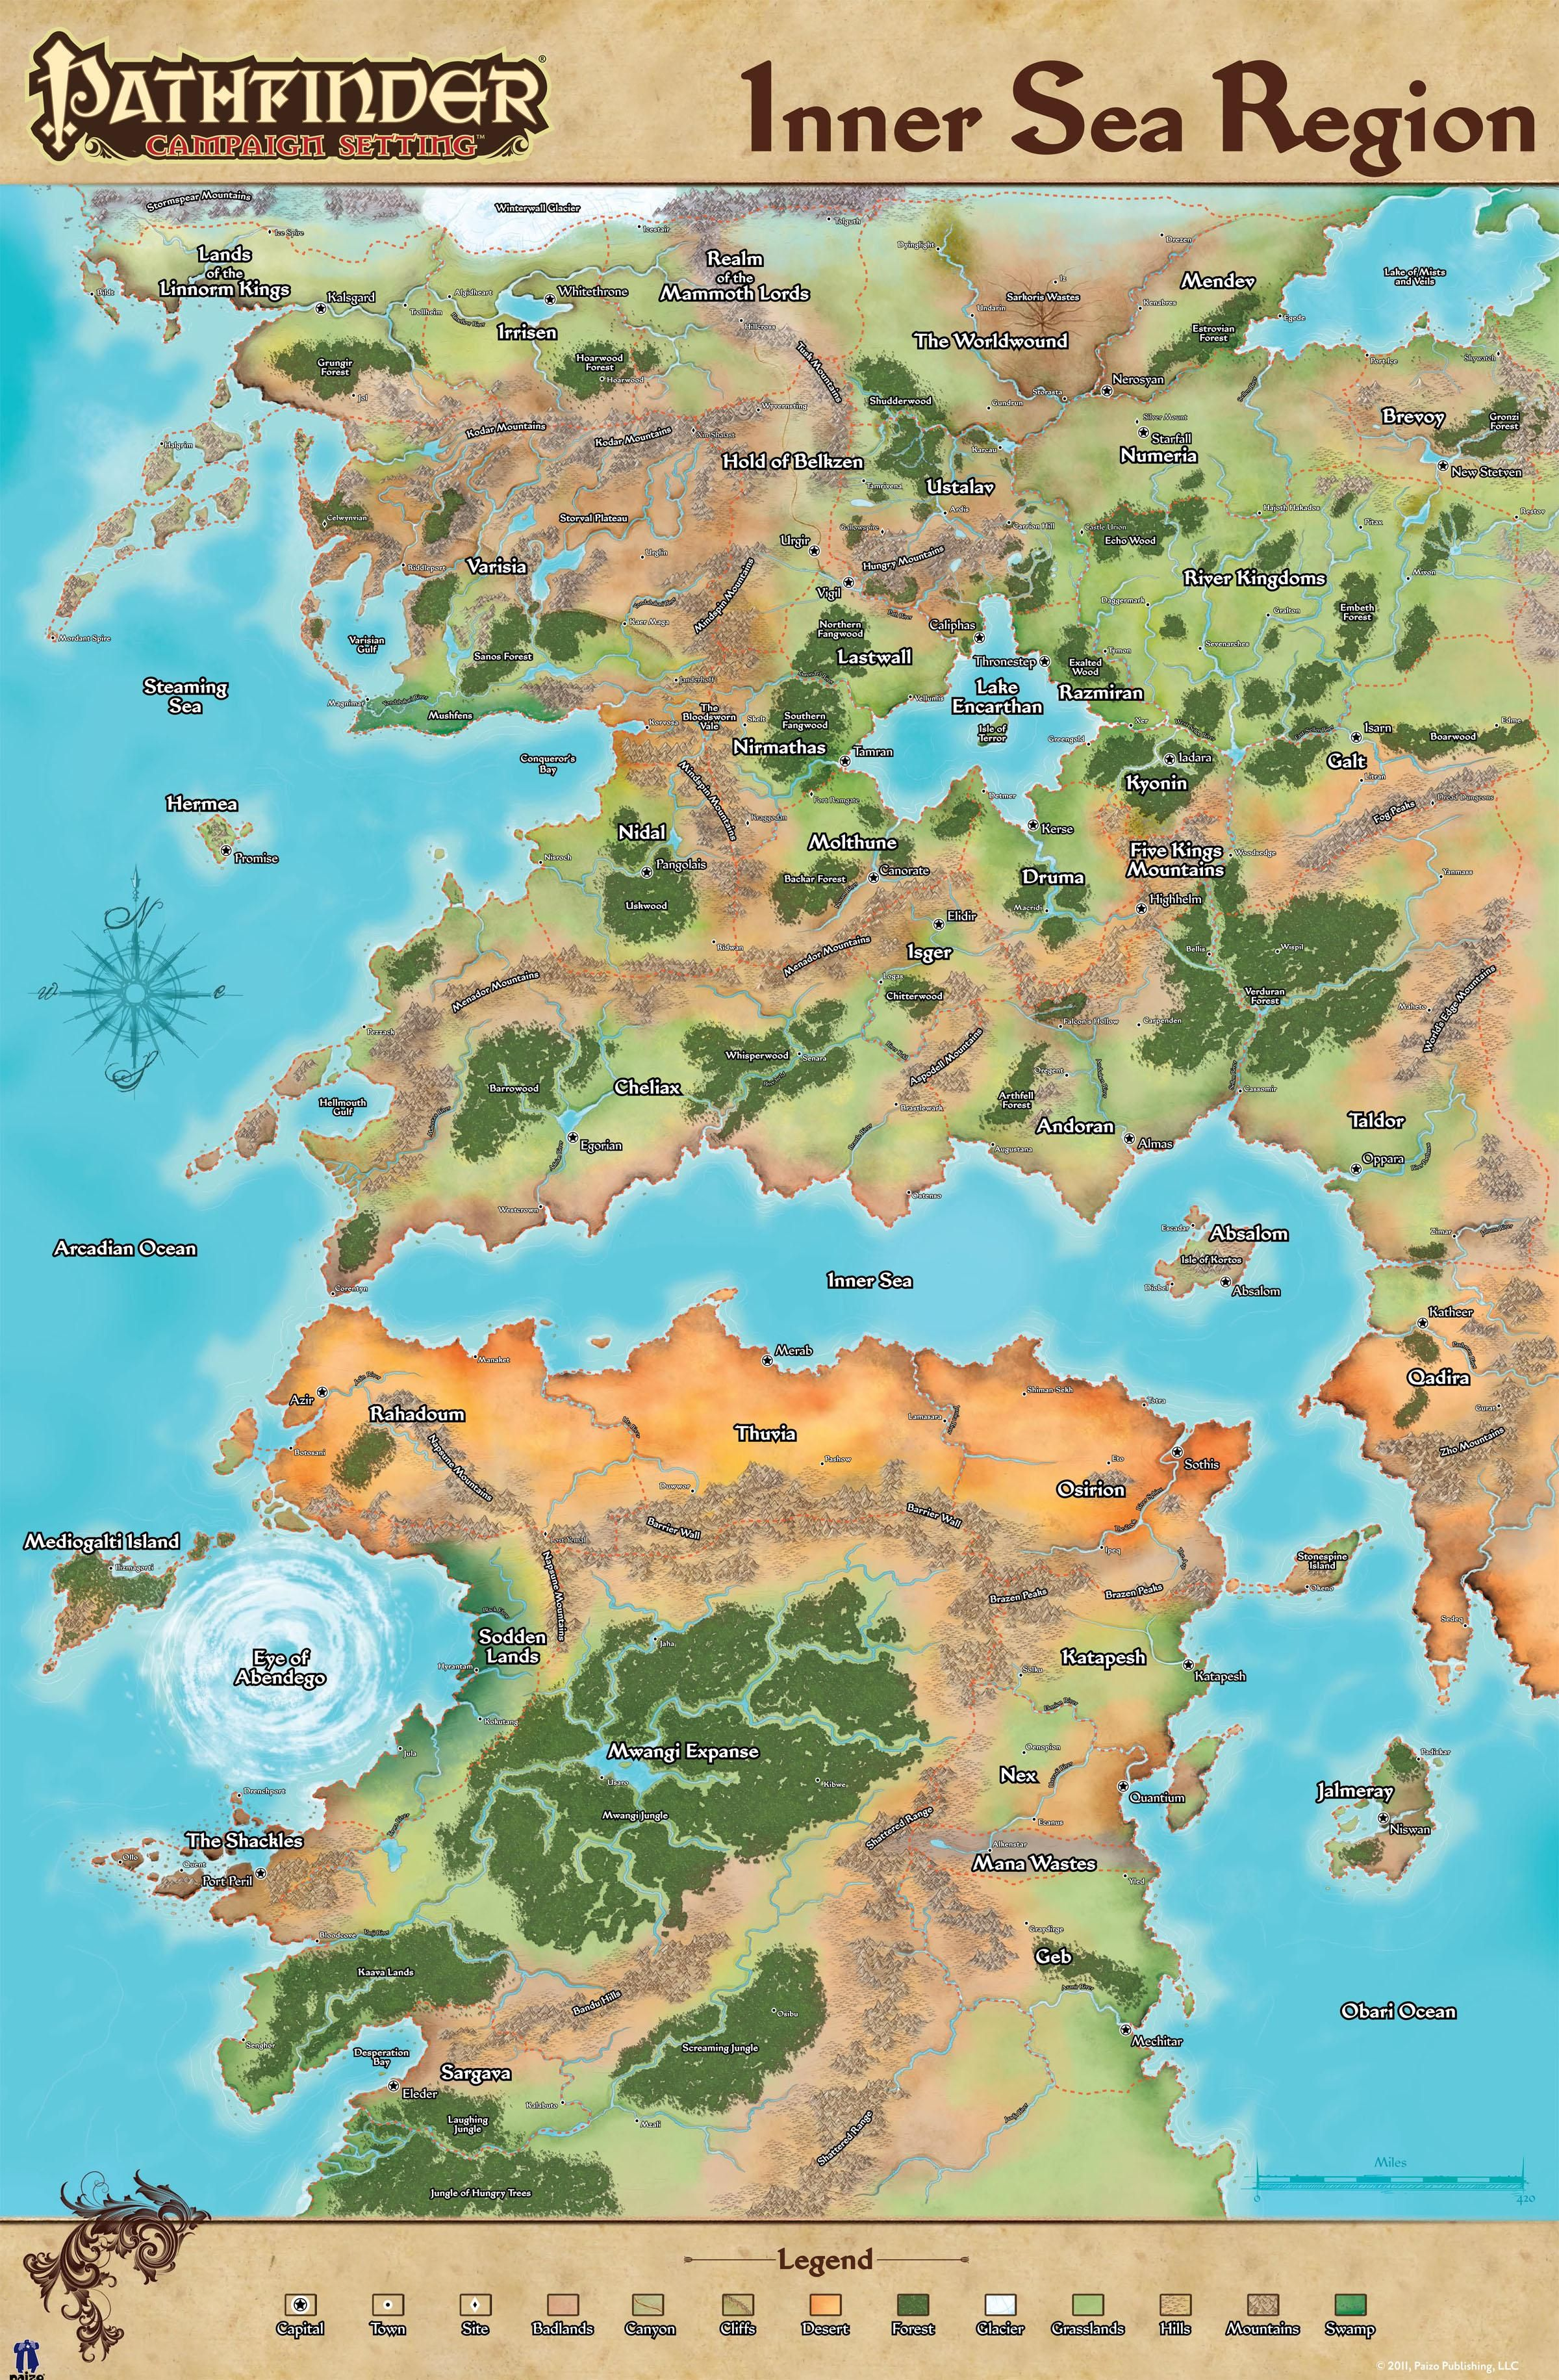 Inner Sea Map The Inner Sea Region World Of Pathfinder Imaginarymaps And Map